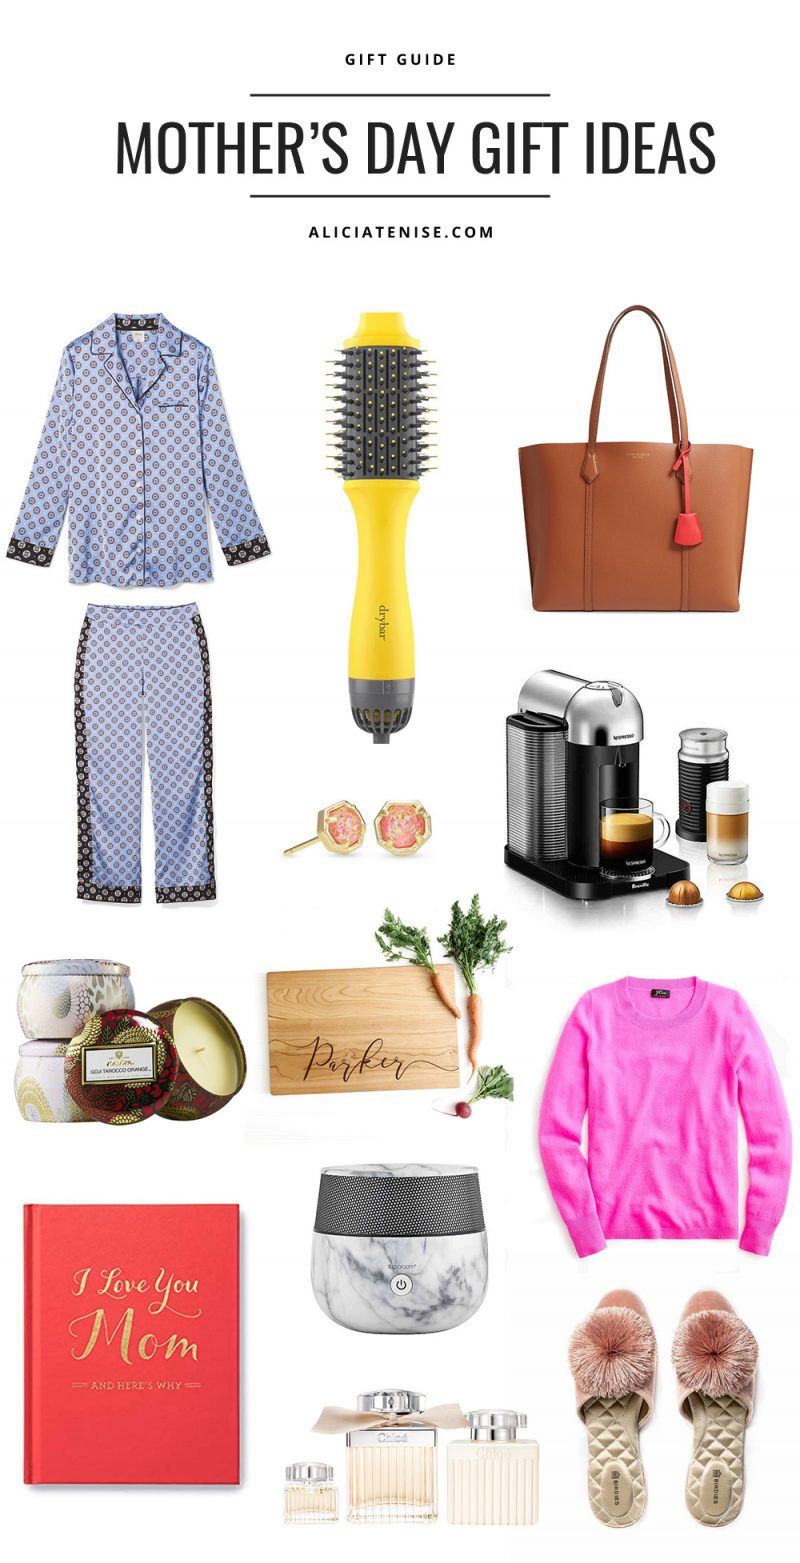 Unique Mother's Day Gift Ideas featured by top US life and style blogger Alicia Tenise | Mother's Day Gift Ideas by popular D.C. life and style blogger, Alicia Tenise: collage image of Satin Pajama Set, Double Shot Blow-Dryer Brush, Perry Leather Tote, Nola Stud Earrings, Nespresso Coffee and Espresso Maker, Mini Candle Trio, Personalized Cutting Board, Cashmere Sweater, I Love You Mom Book, Essential Oil Diffuser, Chloe Eau de Parfum Set, Songbird Slippers